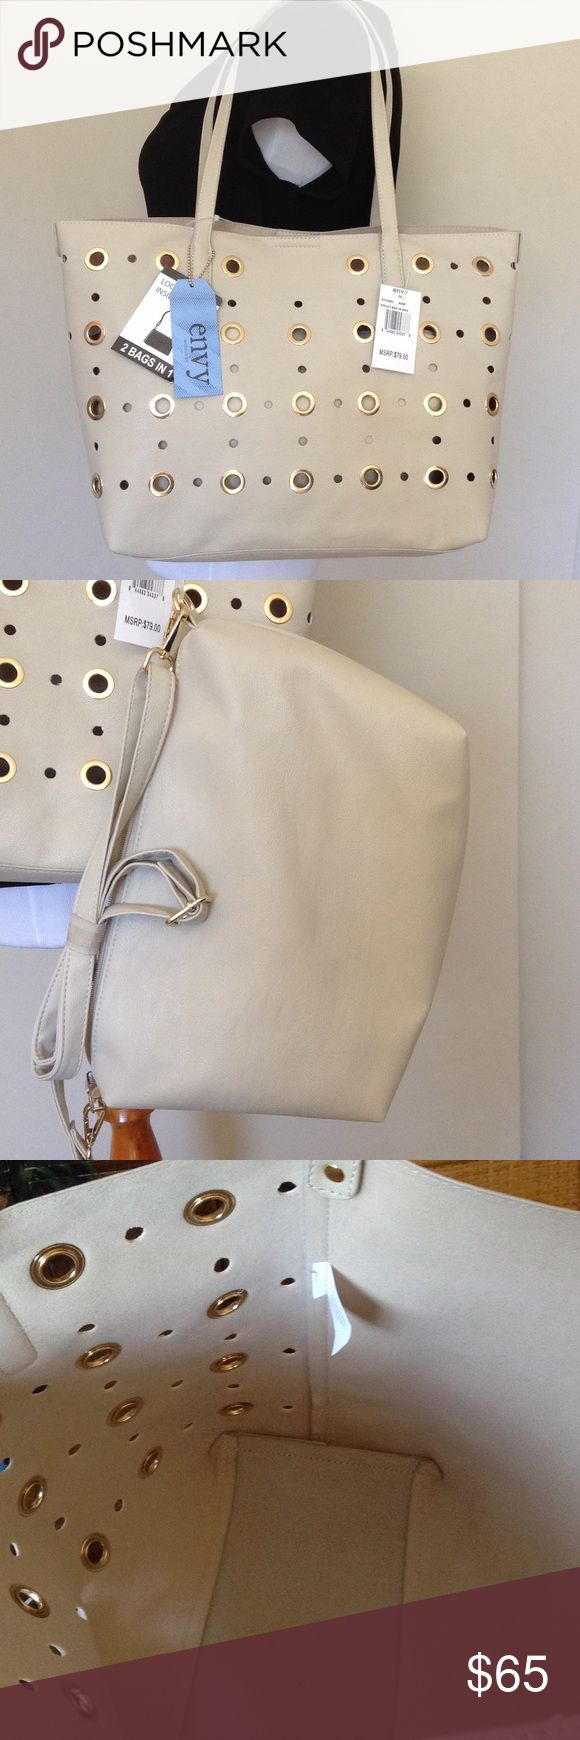 ENVY 2 Bags: Tote and Shoulder Bag 👜 2 bags for the price of 1. Great tote with eyelet rivets and neutral shoulder bag! Color is listed as bone with gold detail ENVY Bags